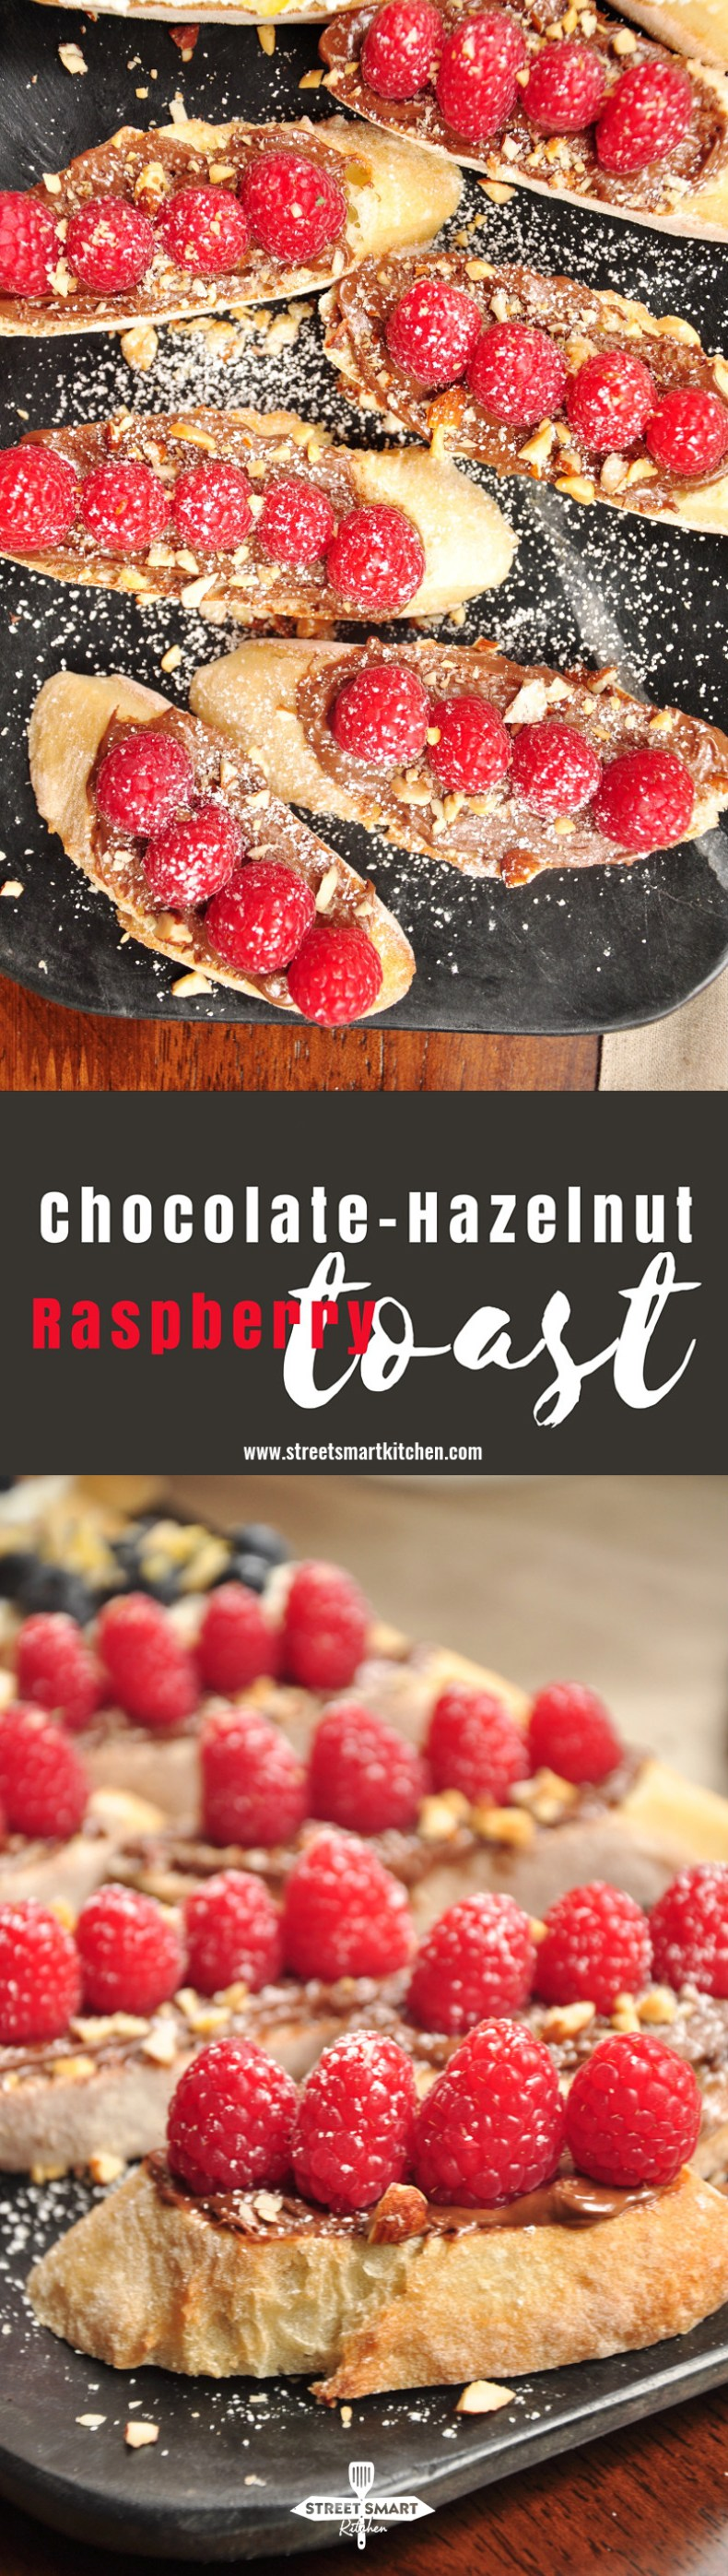 Recently, I've got a new discovery - chocolate and raspberries are best friends! Want prove? This Chocolate-Hazelnut & Raspberry Toast is it! If you like Nutella, you are going to love this recipe. It only calls for five ingredients. Let's count - a good loaf of French bread, Nutella, fresh raspberries, chopped nuts of your choice and powdered sugar for decorating and sweetening things up. That's all.